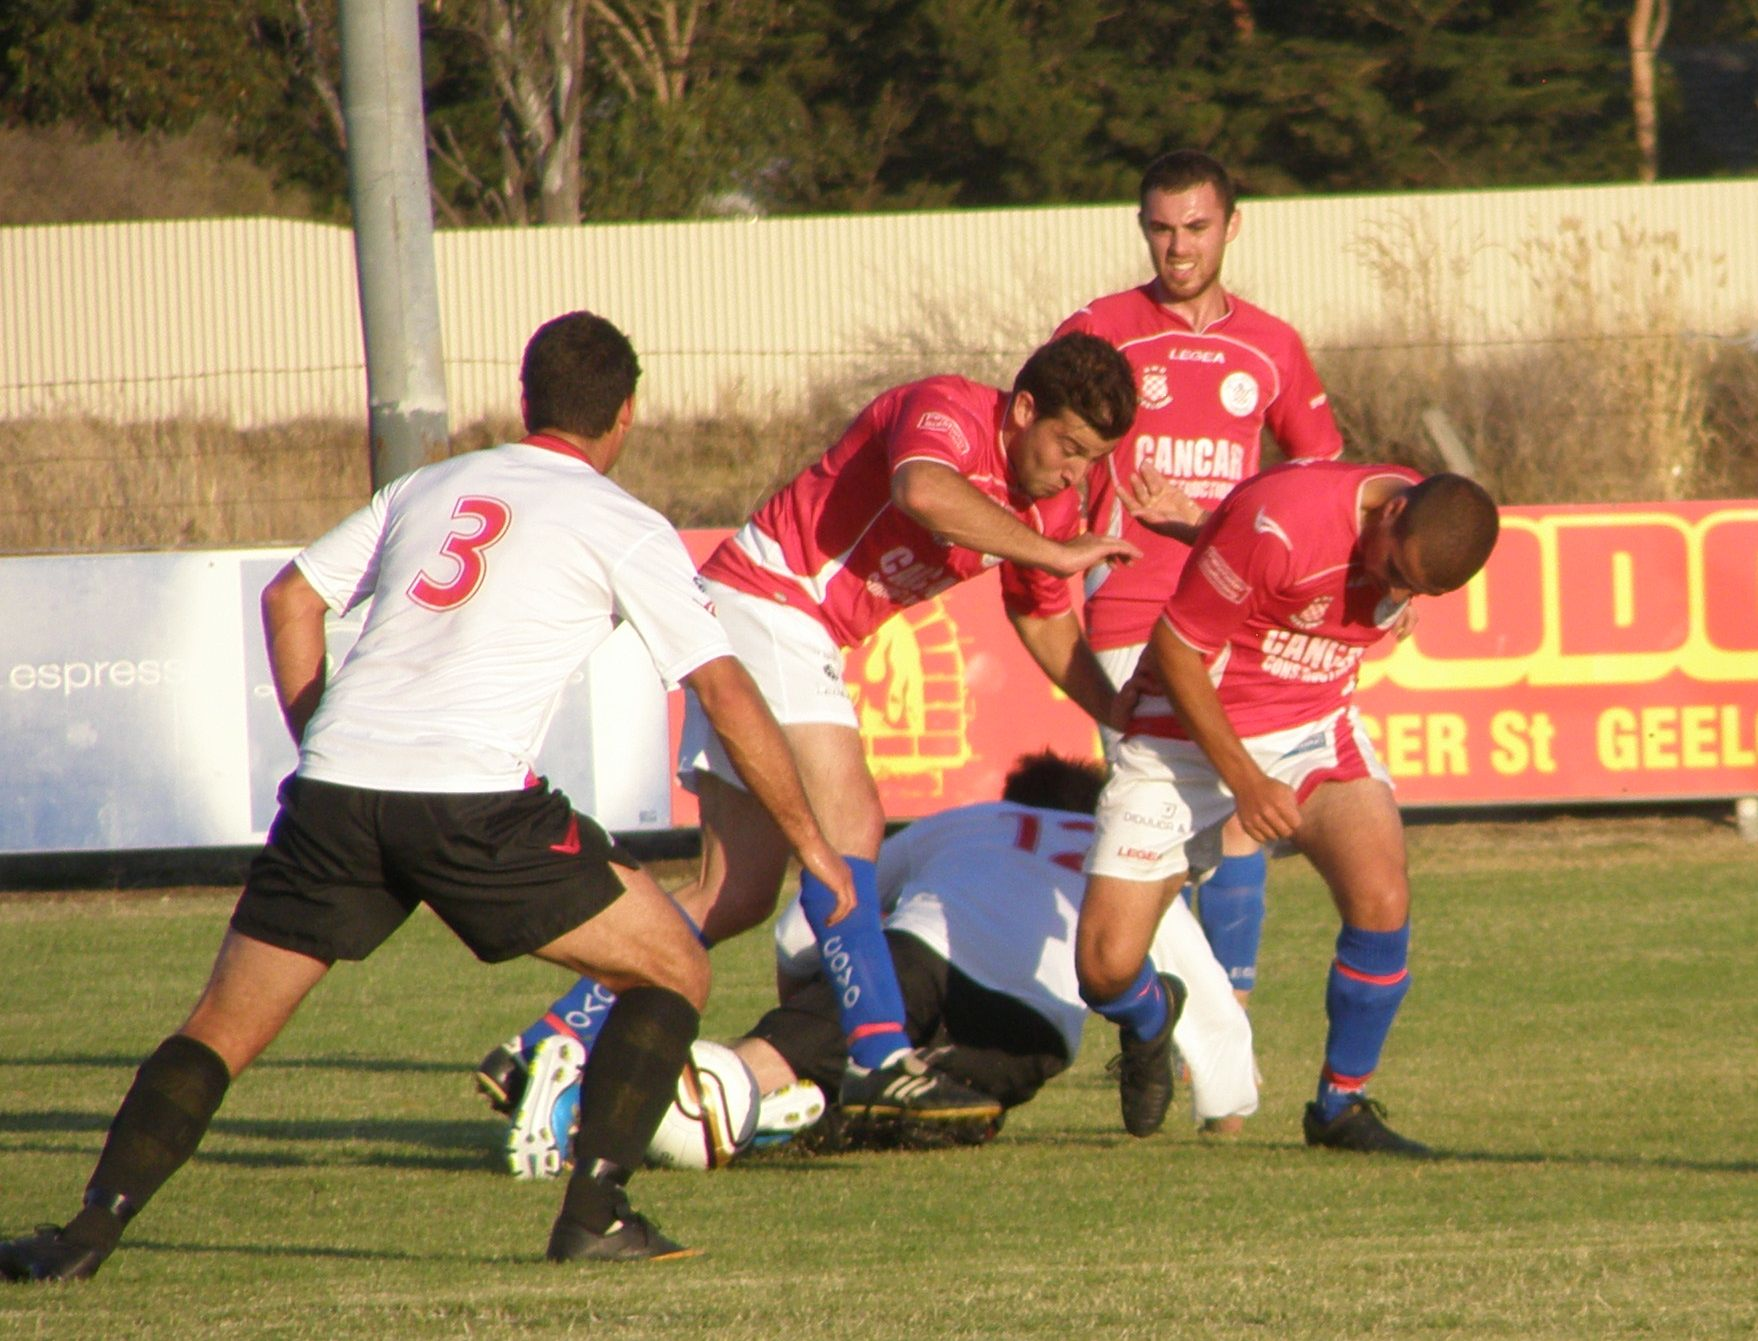 North Geelong down Geelong in Cup opener